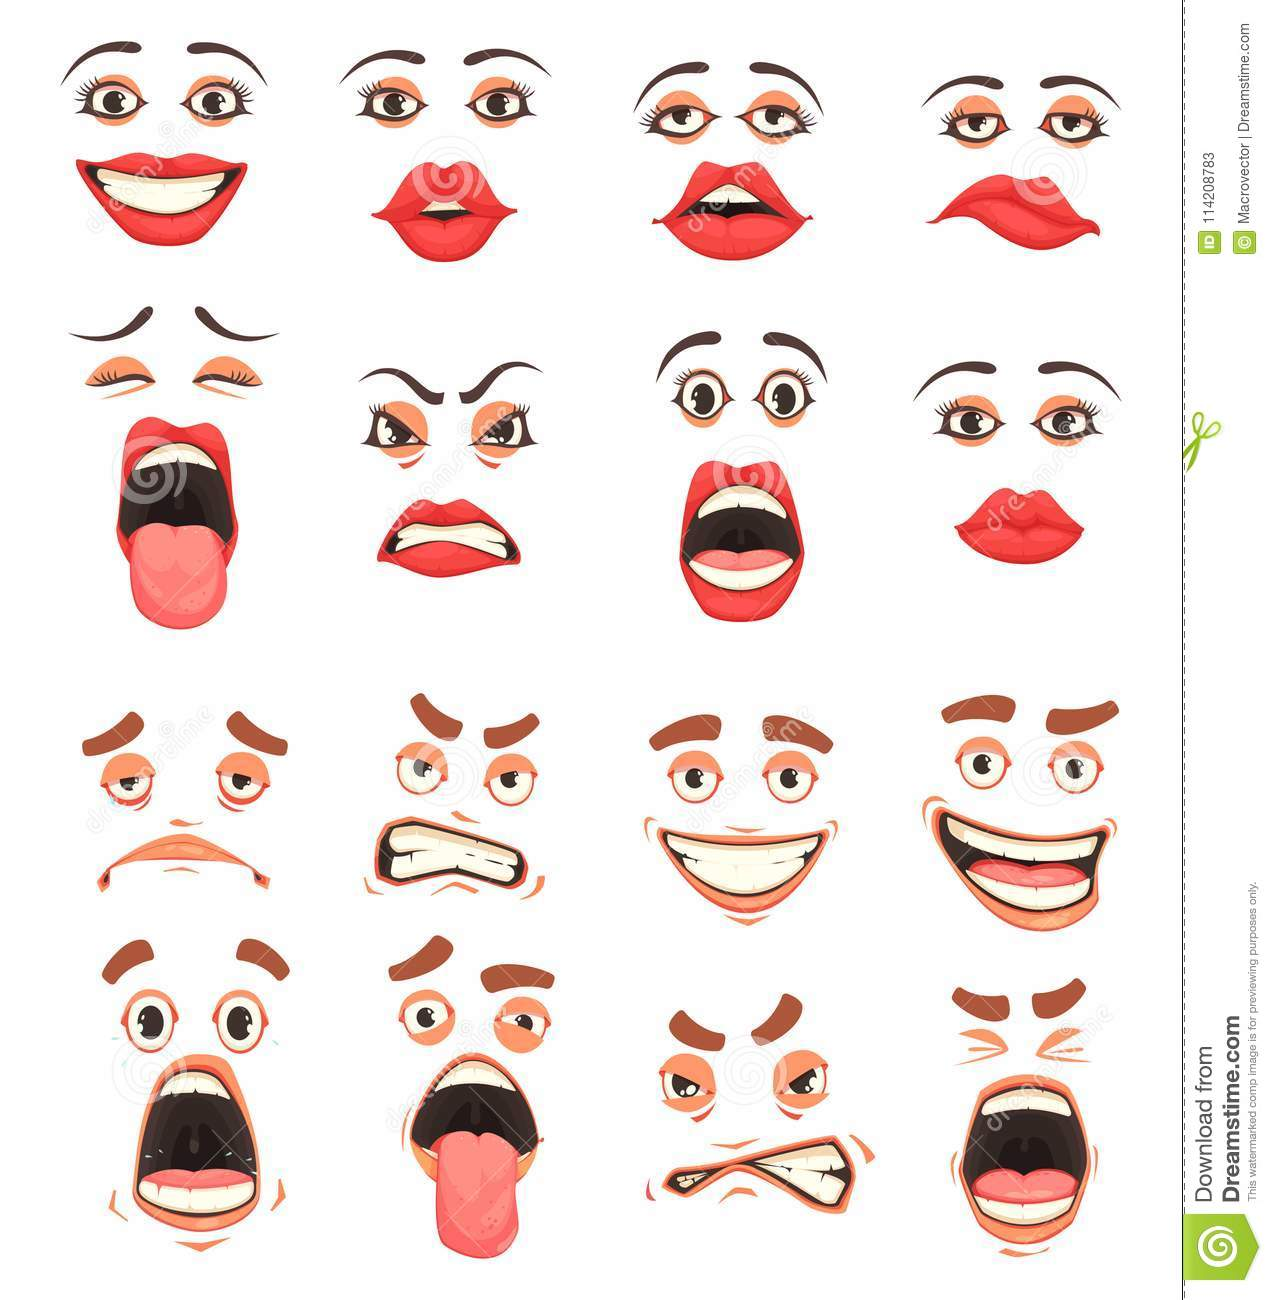 Cartoon Cute Mouth Set Stock Vector Illustration Of Human 114208783